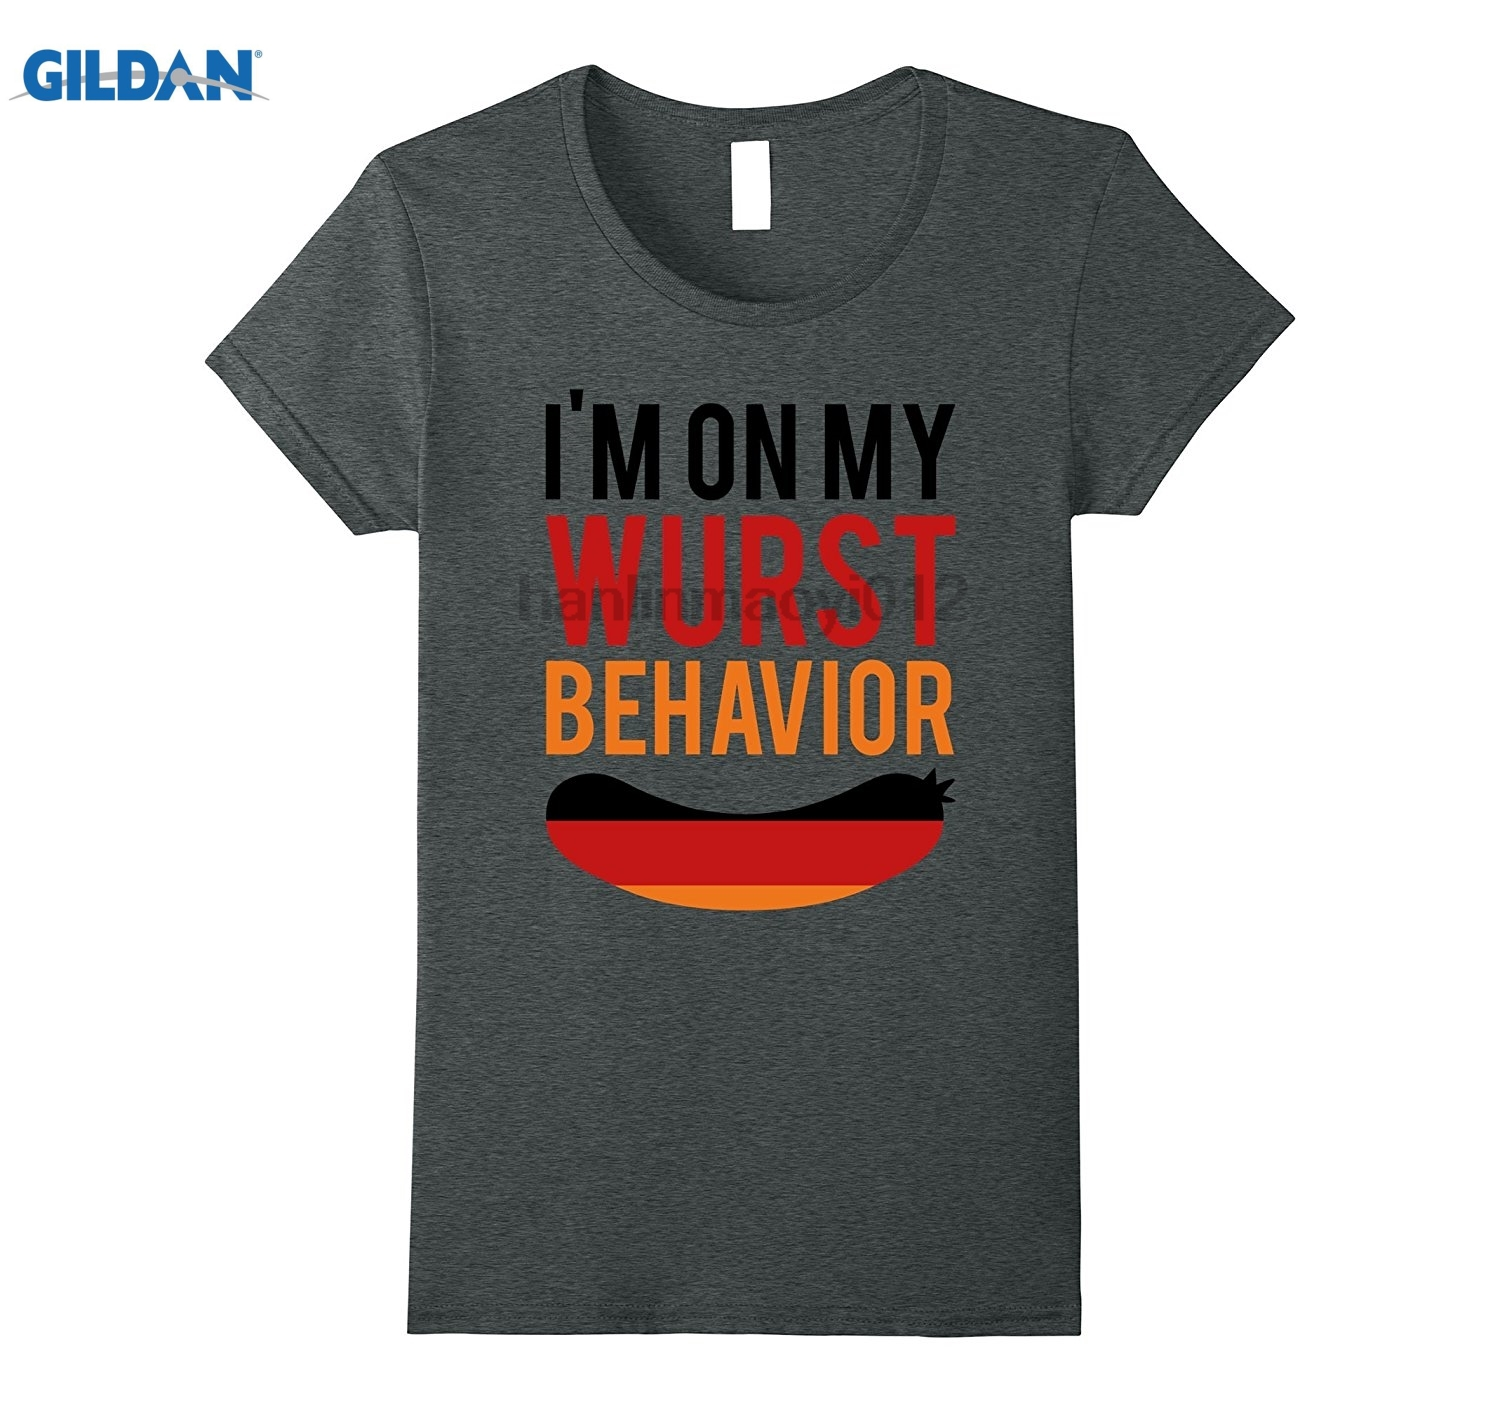 GILDAN Wurst Behavior Oktoberfest T-Shirt - Funny German Gift Tee sunglasses women T-shirt